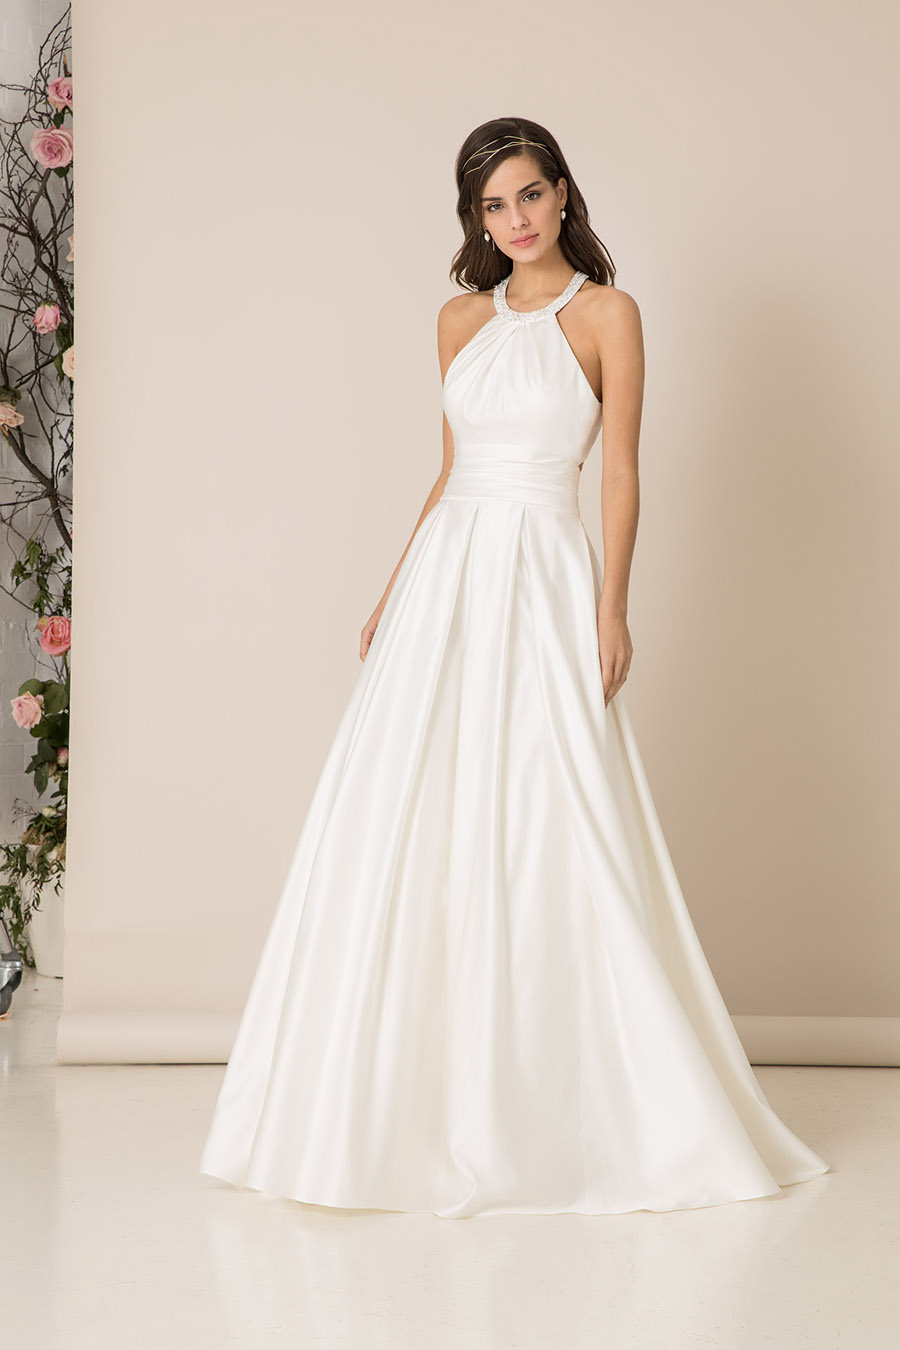 halter-neck-wedding-dress-for-older-brides